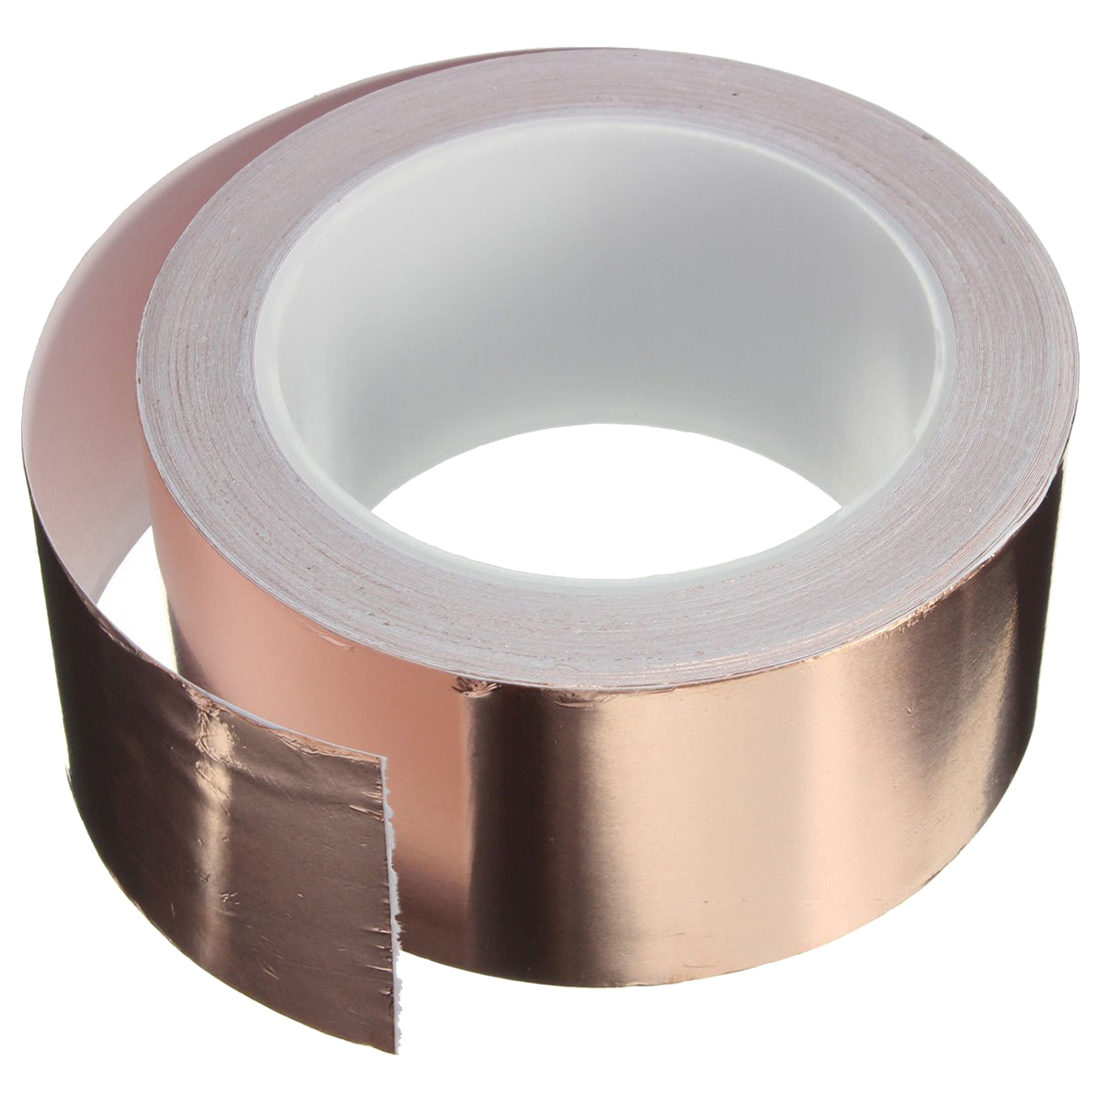 2 PCS of (Copper Foil Tape - (50mm x 20m) - EMI Shielding Conductive Adhesive for Stained Glass,Paper Circuits,Electrical Repa) цена и фото